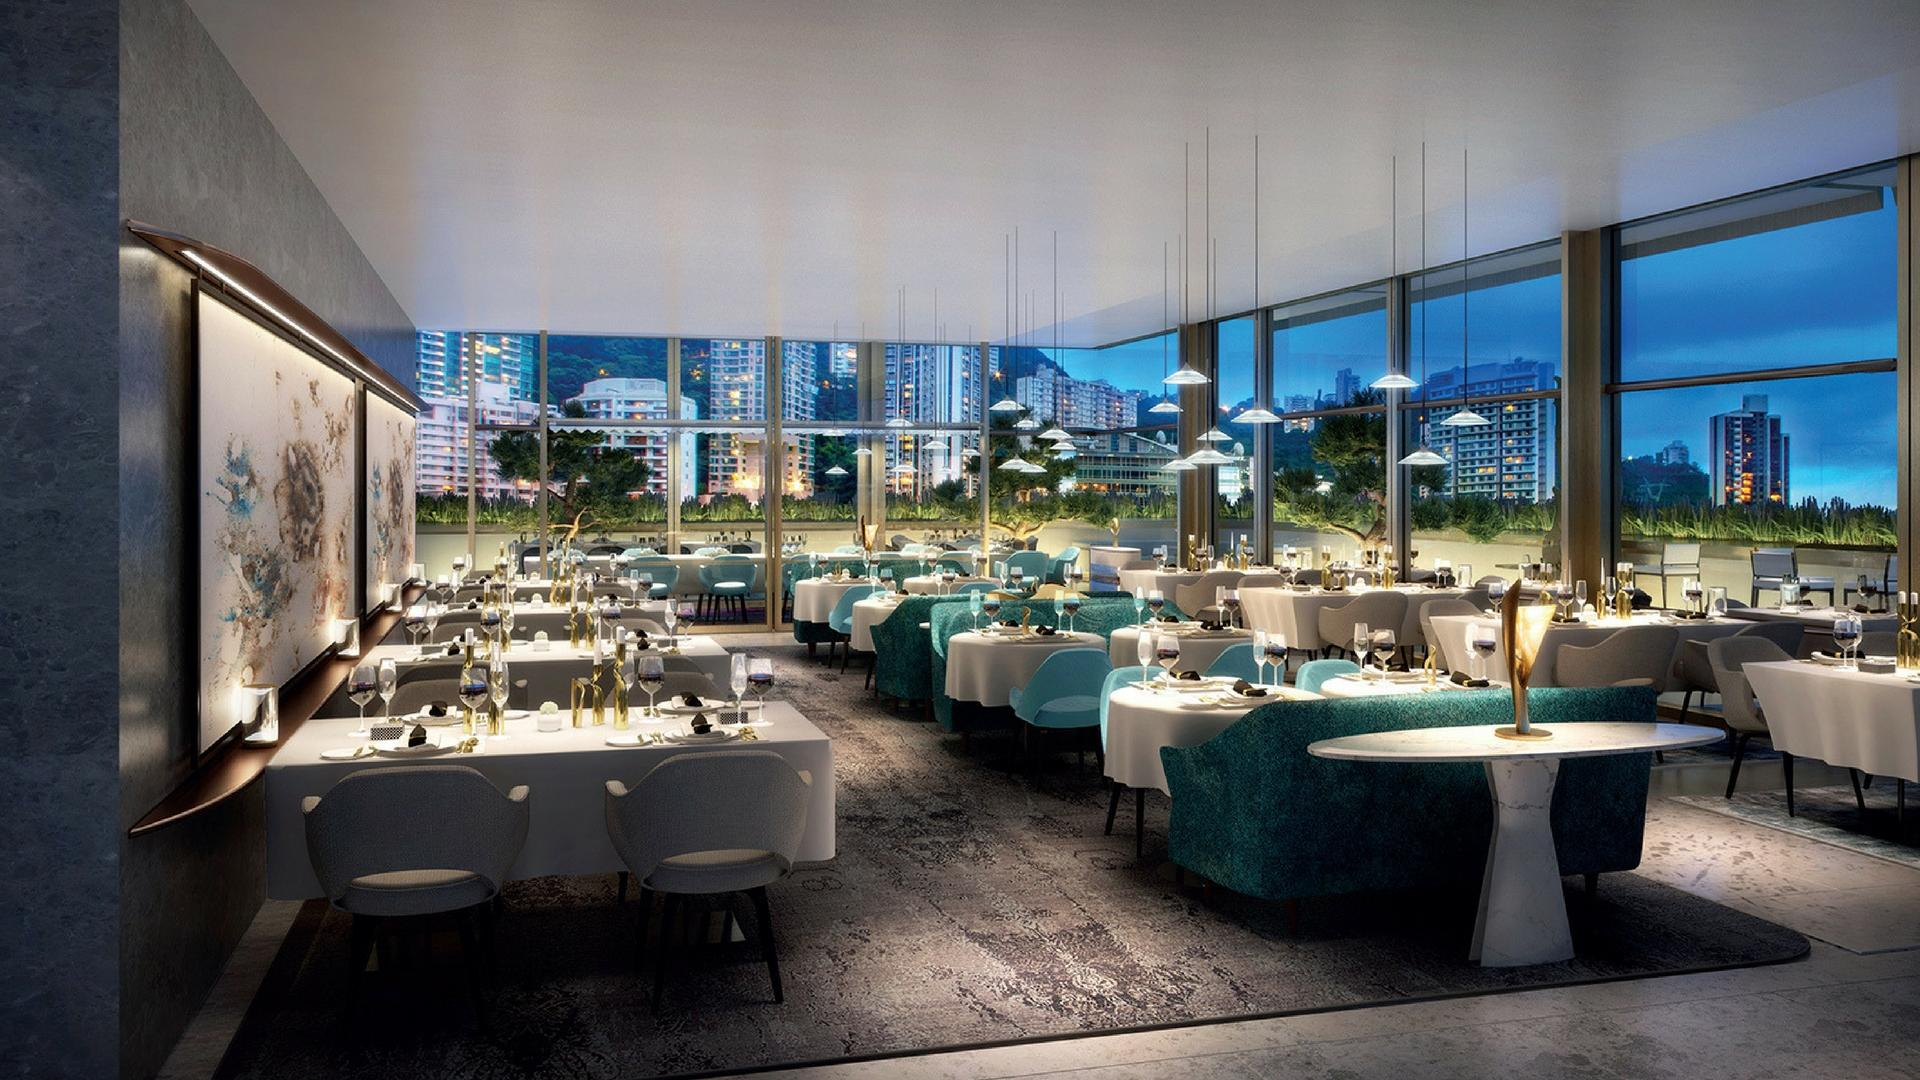 TheMurrayHongKong_Restaurant and Bar - The Aviary2